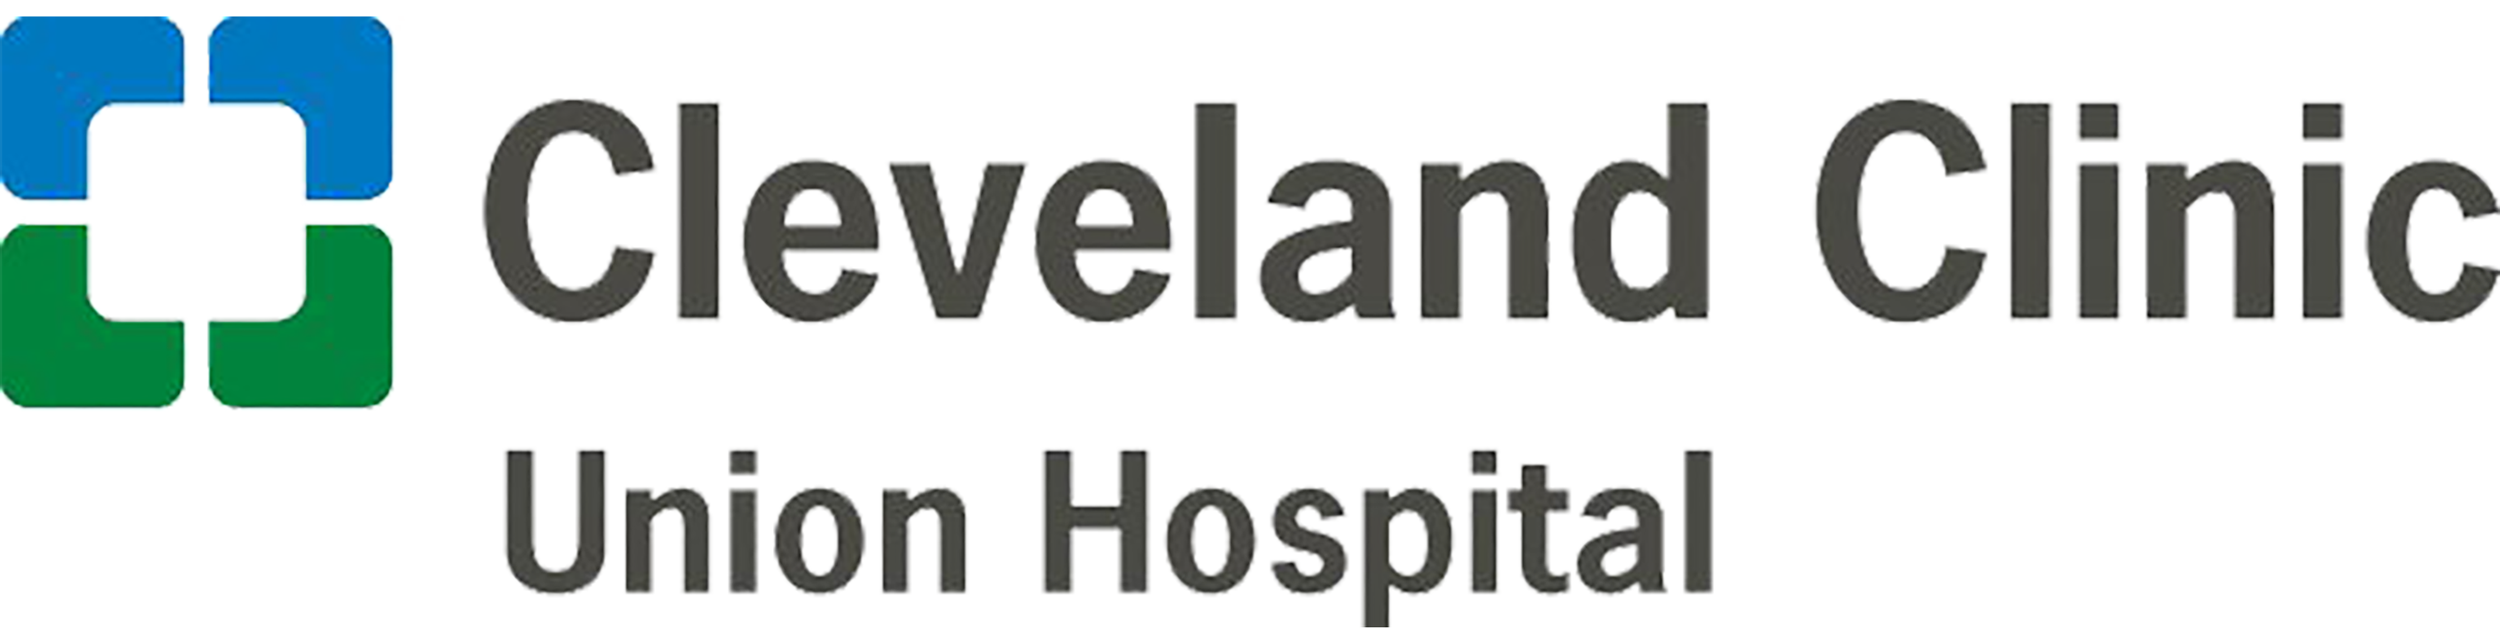 Visit Cleveland Clinic's website